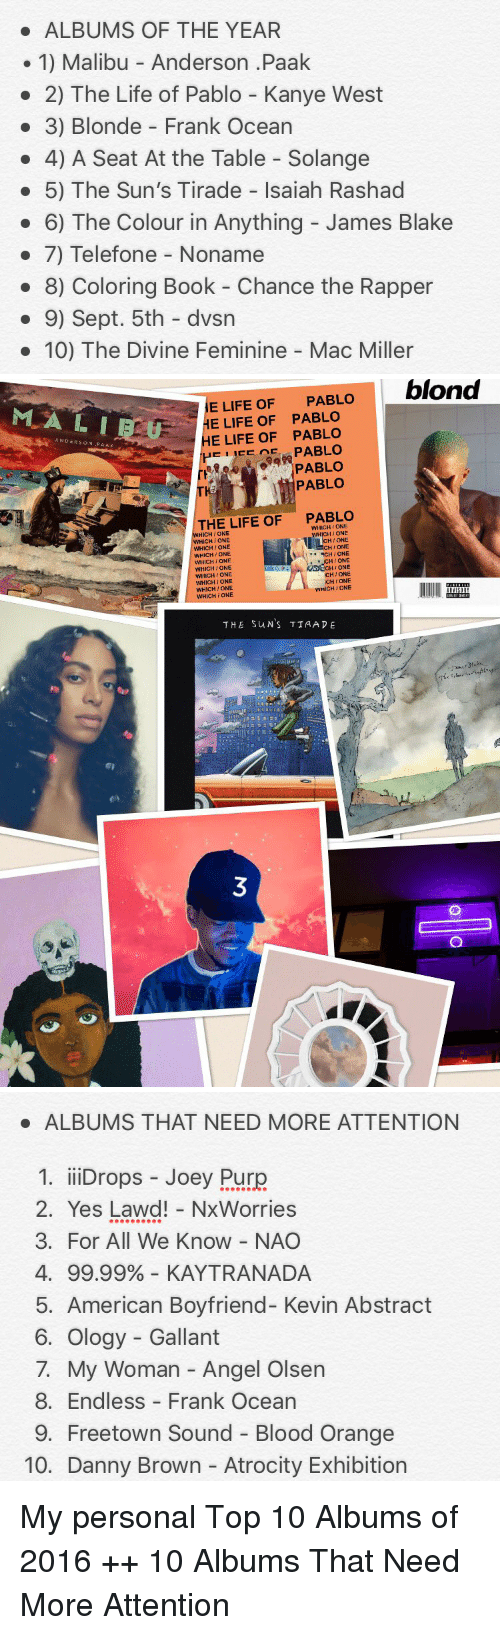 blood orange: ALBUMS OF THE YEAR  1) Malibu Anderson .Paak  2) The Life of Pablo Kanye West  3) Blonde Frank Ocean  4) A Seat At the Table Solange  5) The Sun's Tirade Isaiah Rashad  6) The Colour in Anything James Blake  7) Telefone No  8) Coloring Book Chance the Rapper  9) Sept. 5th dvsn  10) The Divine Feminine Mac Miller   blond  MAL I UE HE LIFE OF PABLO  E LIFE OF PABLO  AND  RSON PAAK  PABLO  HE CA PABLO  PABLO  THE LIFE OF  PABLO  HICH ONE  CH ONE.  WHICH JONE  -CH ONE  WHICH ONE.  ONE  HIONE  WHICH ONE  WHICH ONE.  ICH ONE  CH ONE  WHICH iONE  WHICH ONE  WHICH ONE  THE Su NS TTAA DE   ALBUMS THAT NEED MORE ATTENTION  1. iiiDrops Joey Purp  2. Yes Lawd! NxWorries  3. For All We Know NAO  4. 99.99% KAYTRANADA  5. American Boyfriend- Kevin Abstract  6. Ology Gallant  7. My Woman Angel Olsen  8. Endless Frank Ocean  9. Freetown Sound Blood Orange  10. Danny Brown Atrocity Exhibition My personal Top 10 Albums of 2016 ++ 10 Albums That Need More Attention